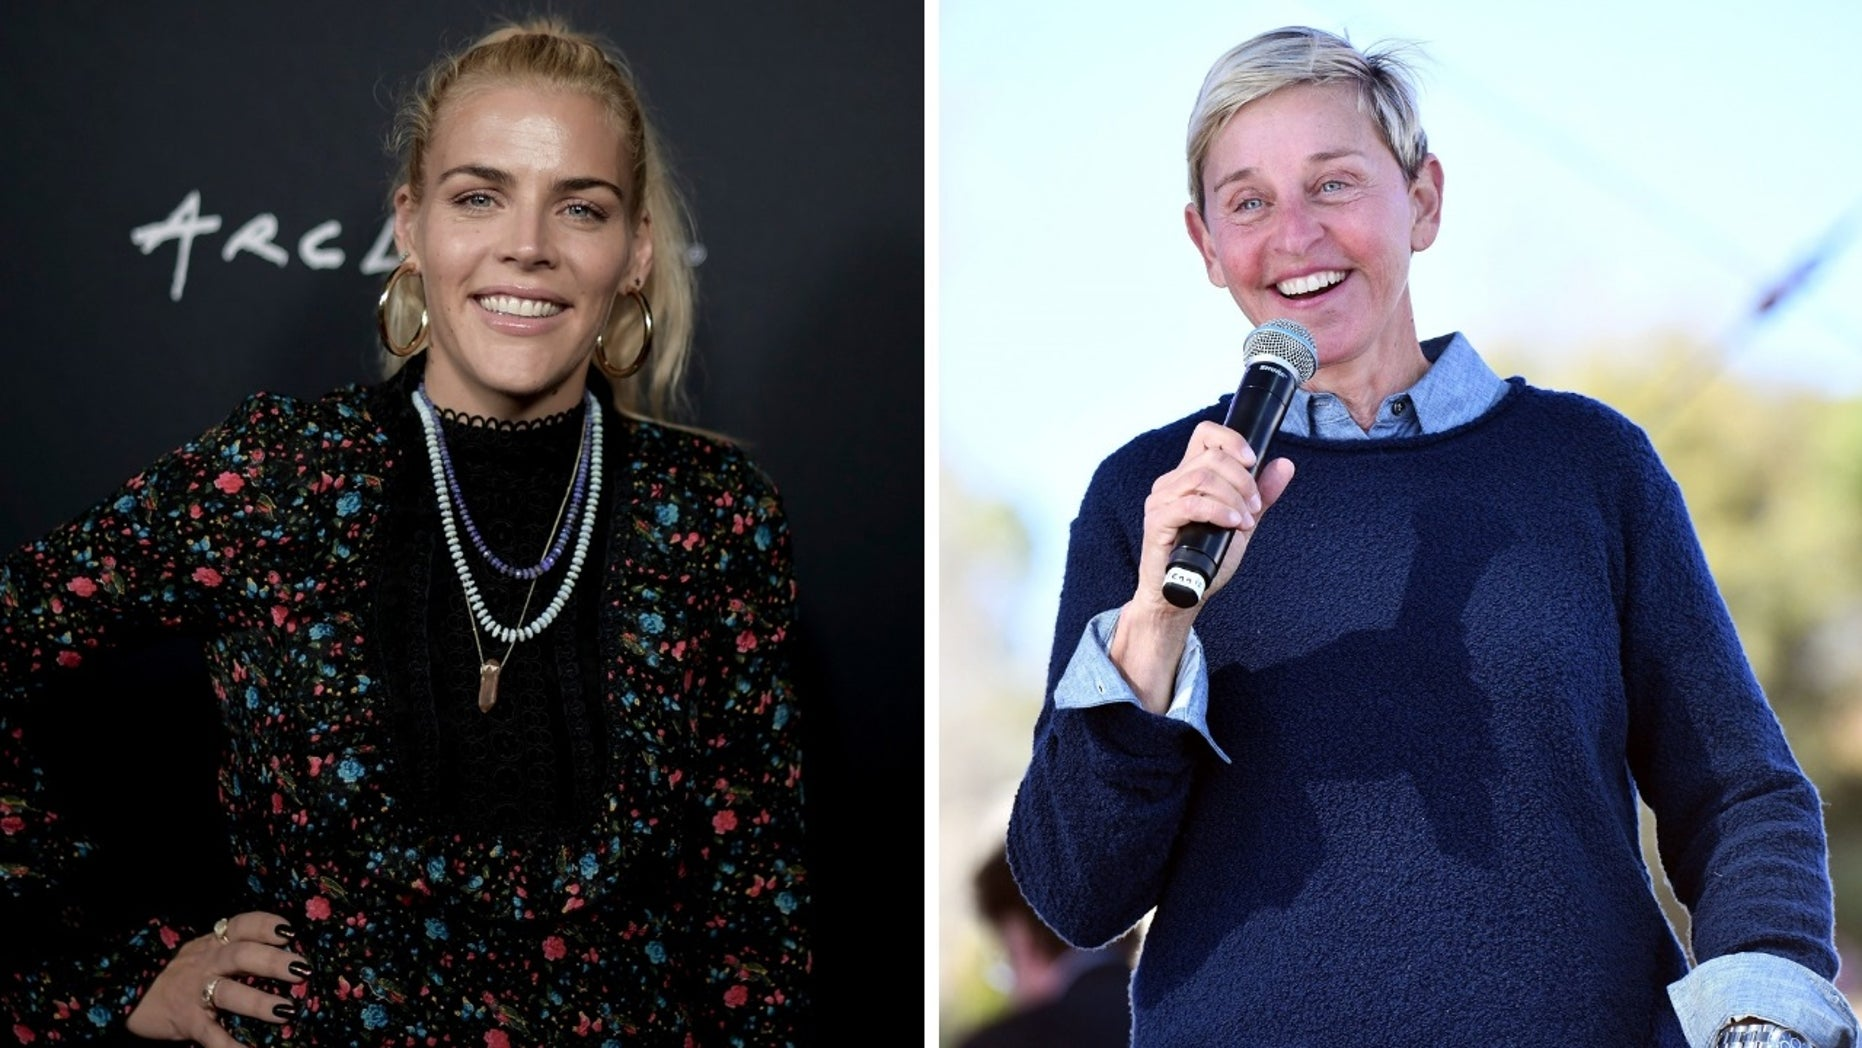 Ellen DeGeneres opens up about being a survivor of sexual assault